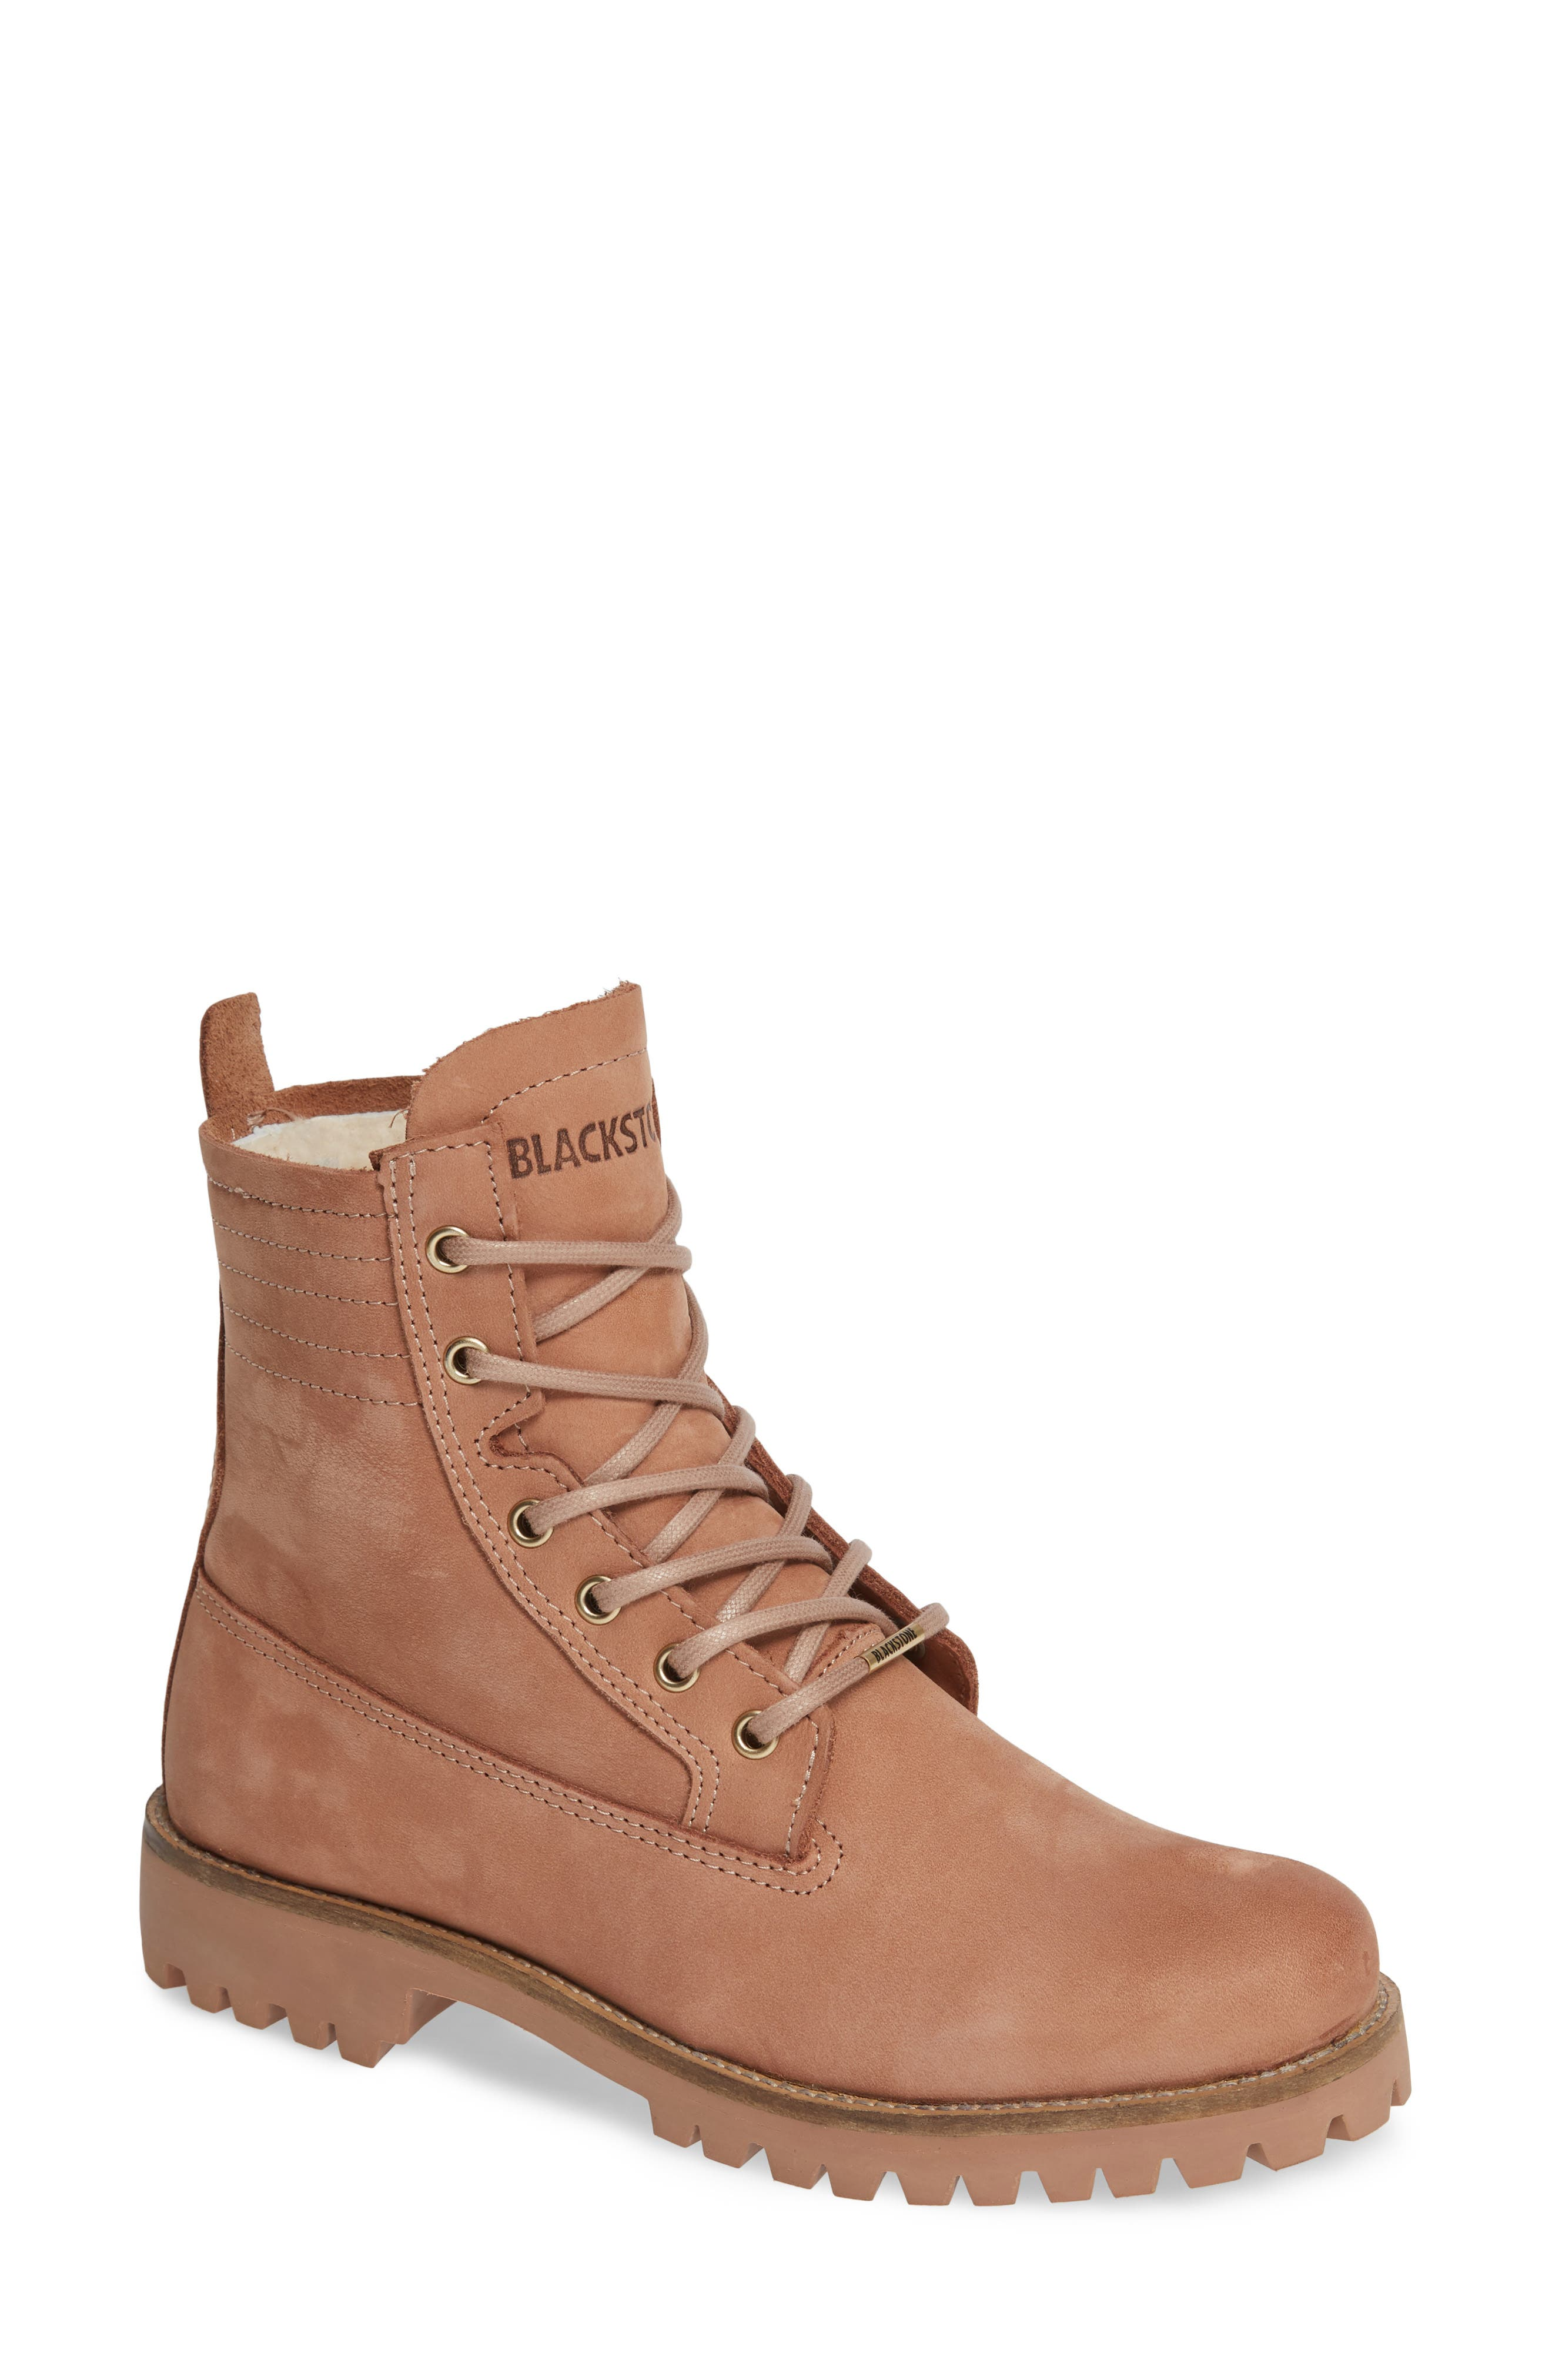 Blackstone Ol22 Lace-Up Boot With Genuine Shearling Lining, Beige